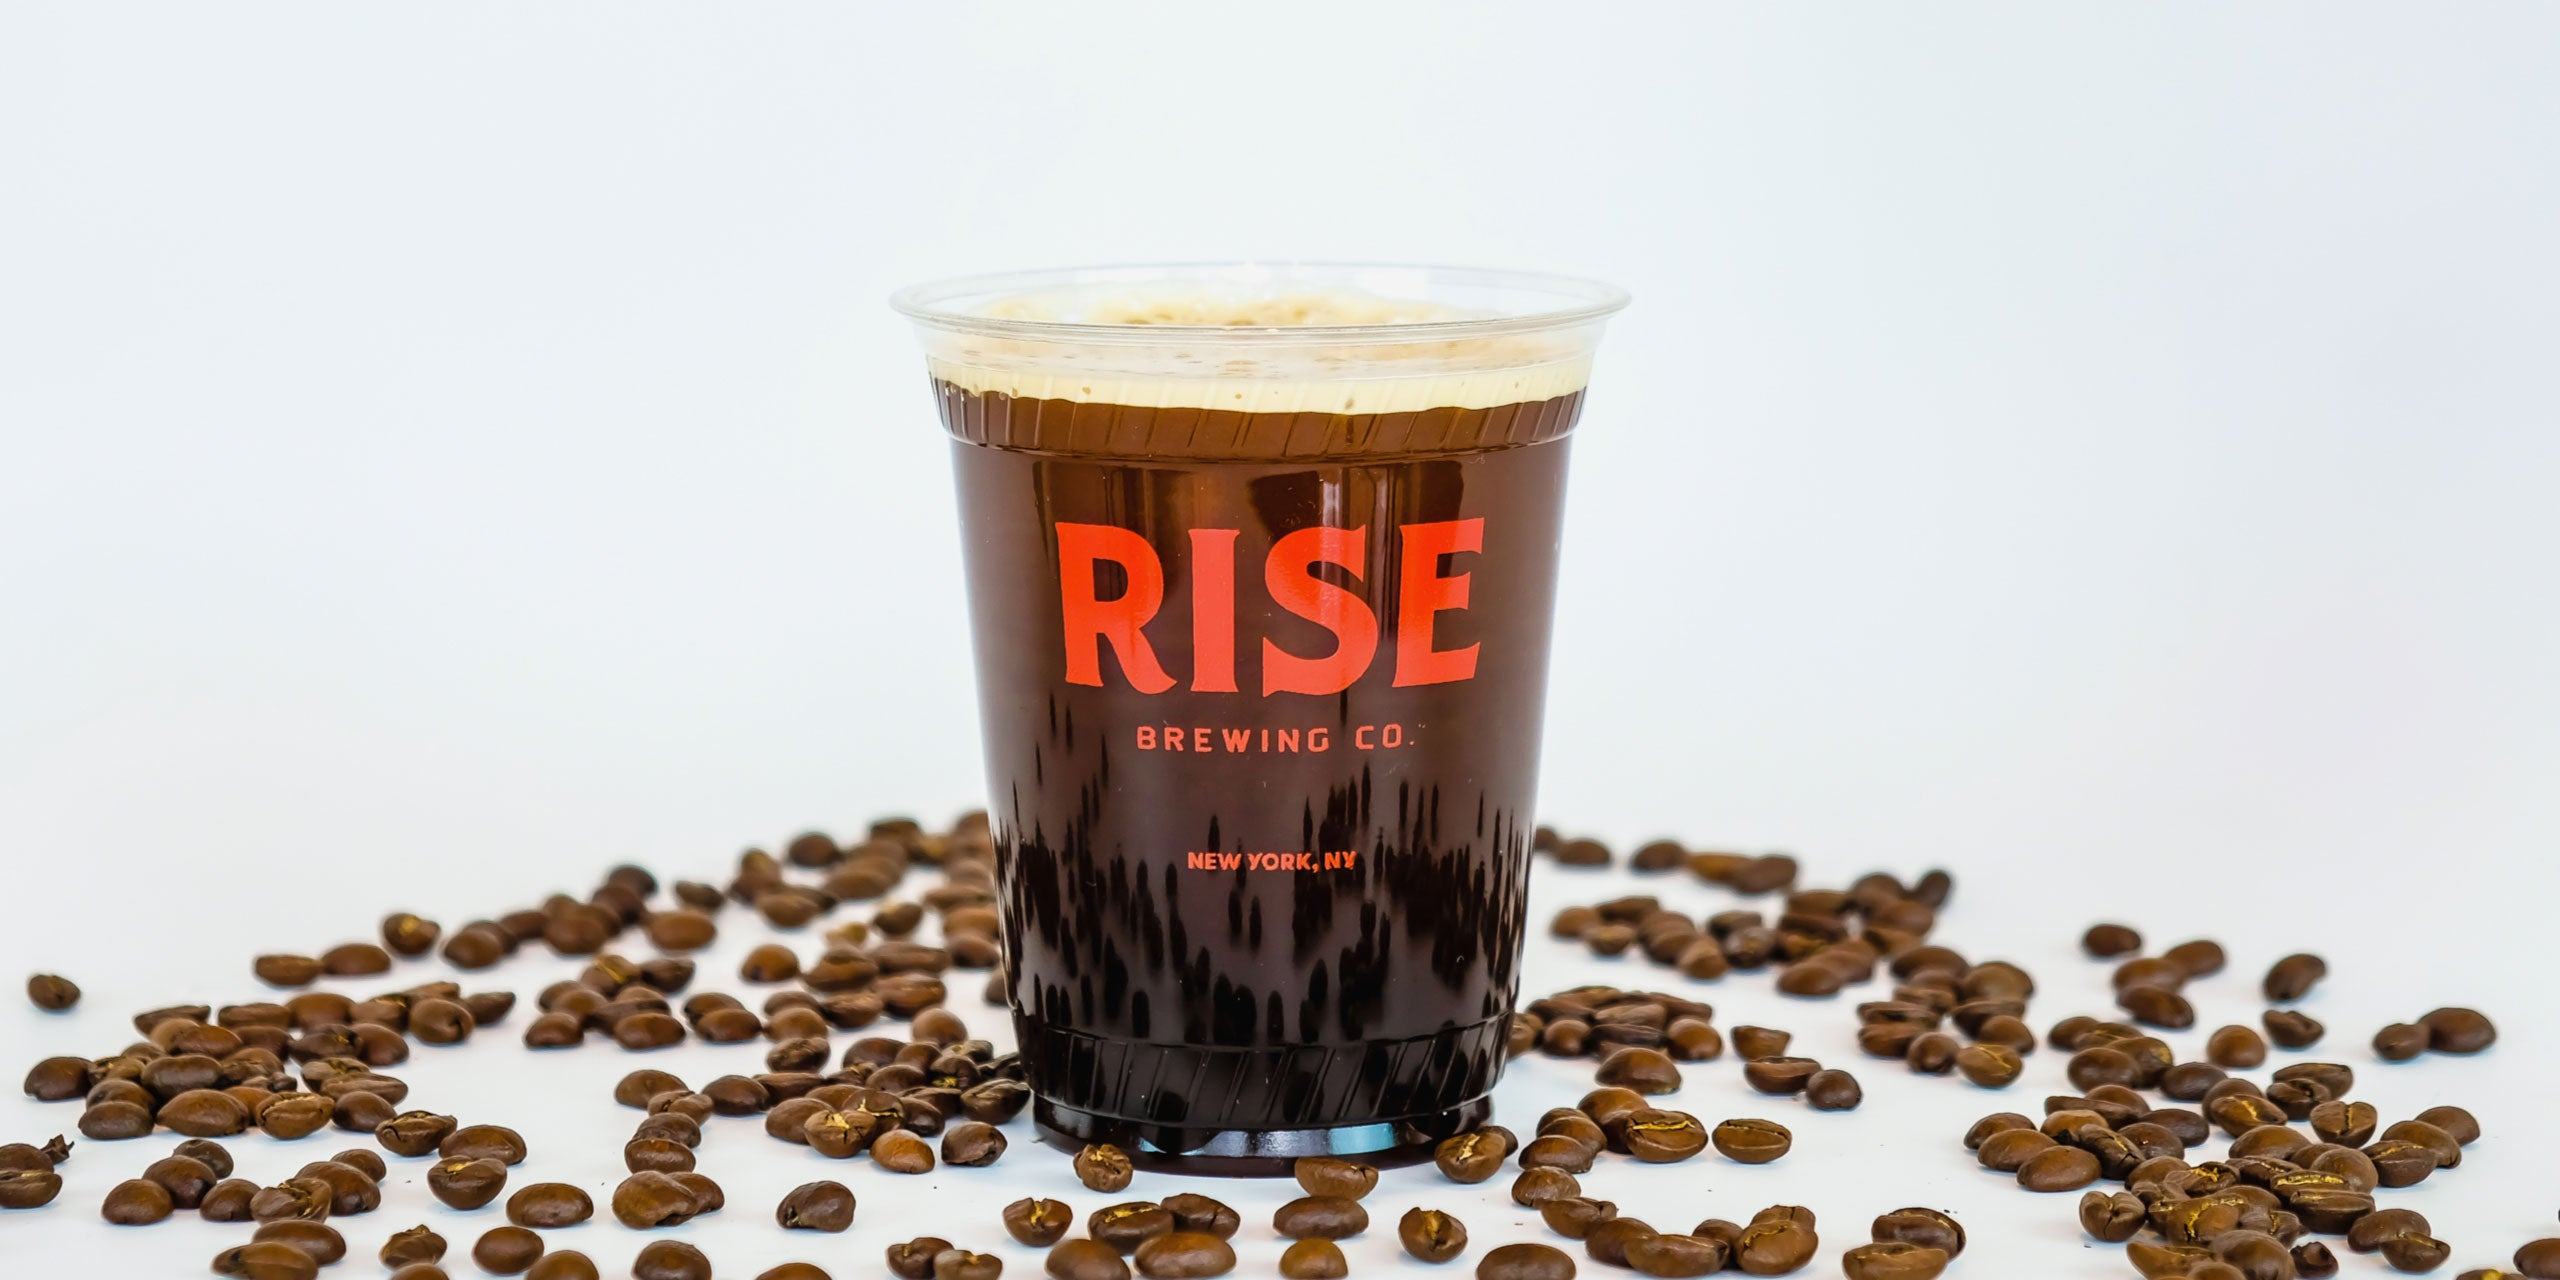 RISE nitro cold brew coffee in Original Black flavor with coffee beans - RISE Brewing Co.